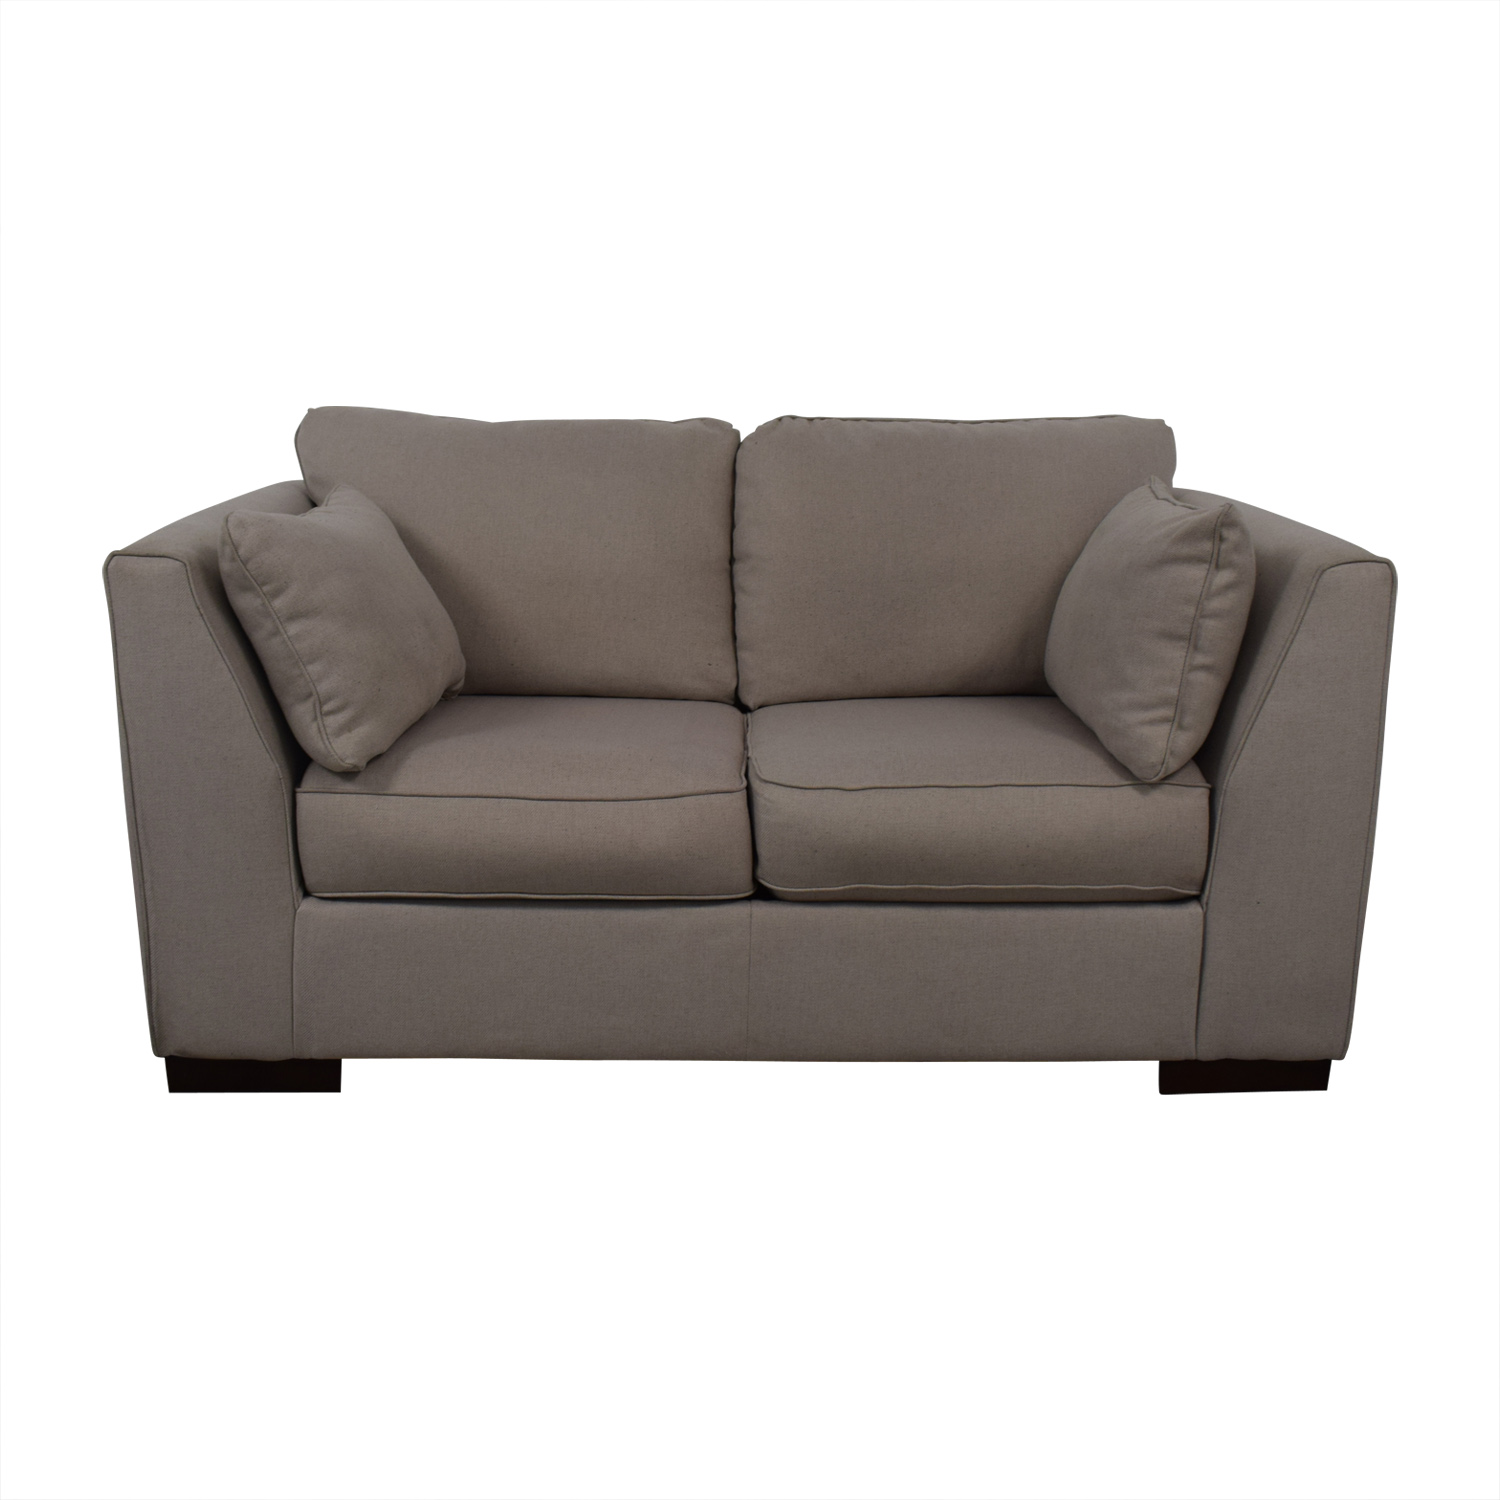 Ashley Furniture Ashley Furniture Pierin Loveseat second hand